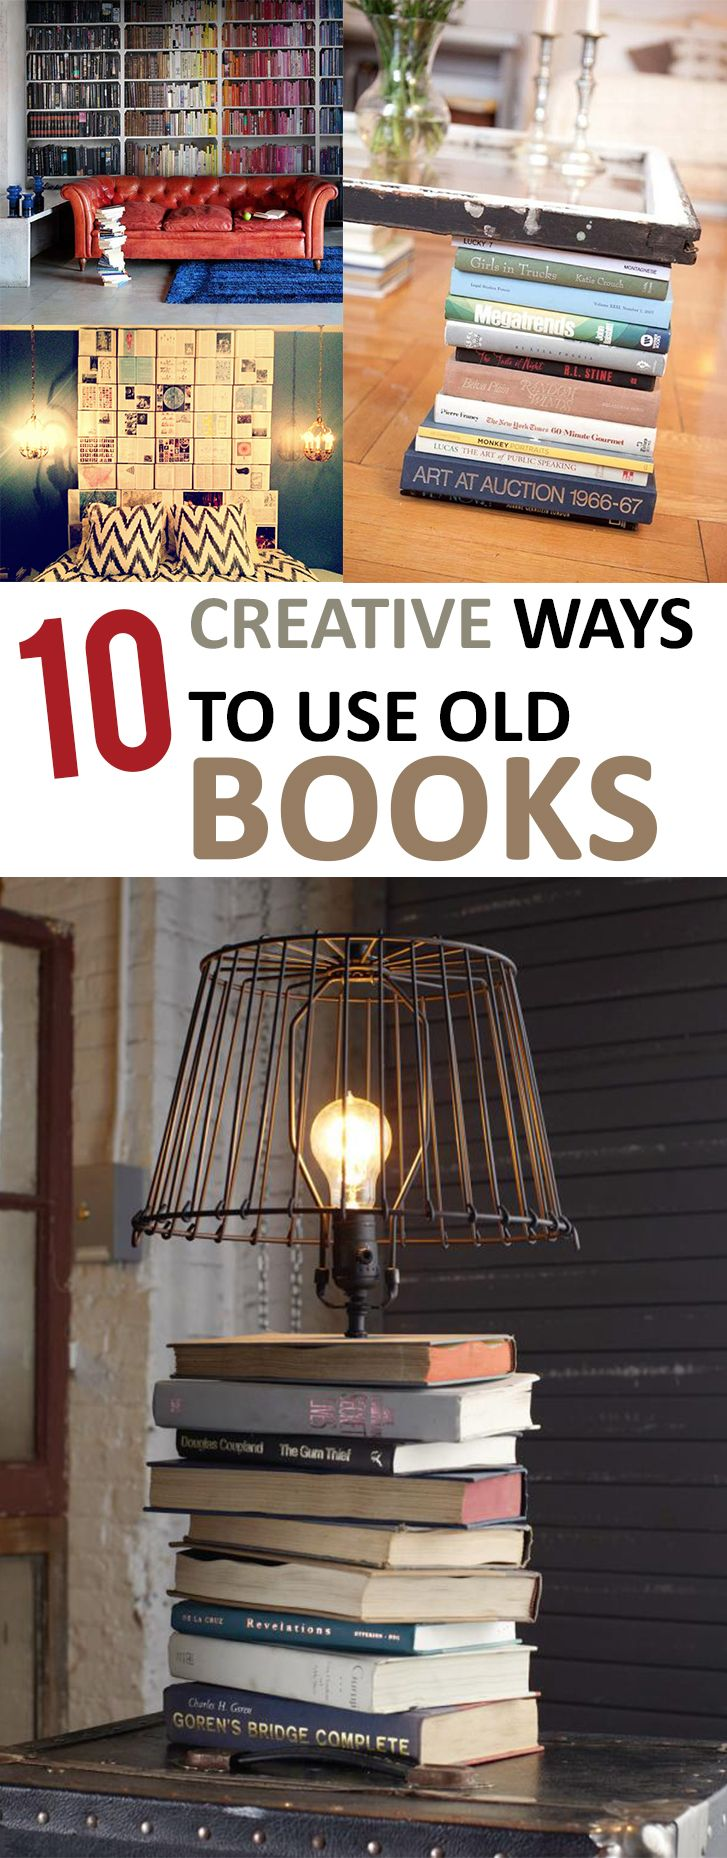 10 Creative Ways to Use Old Books -